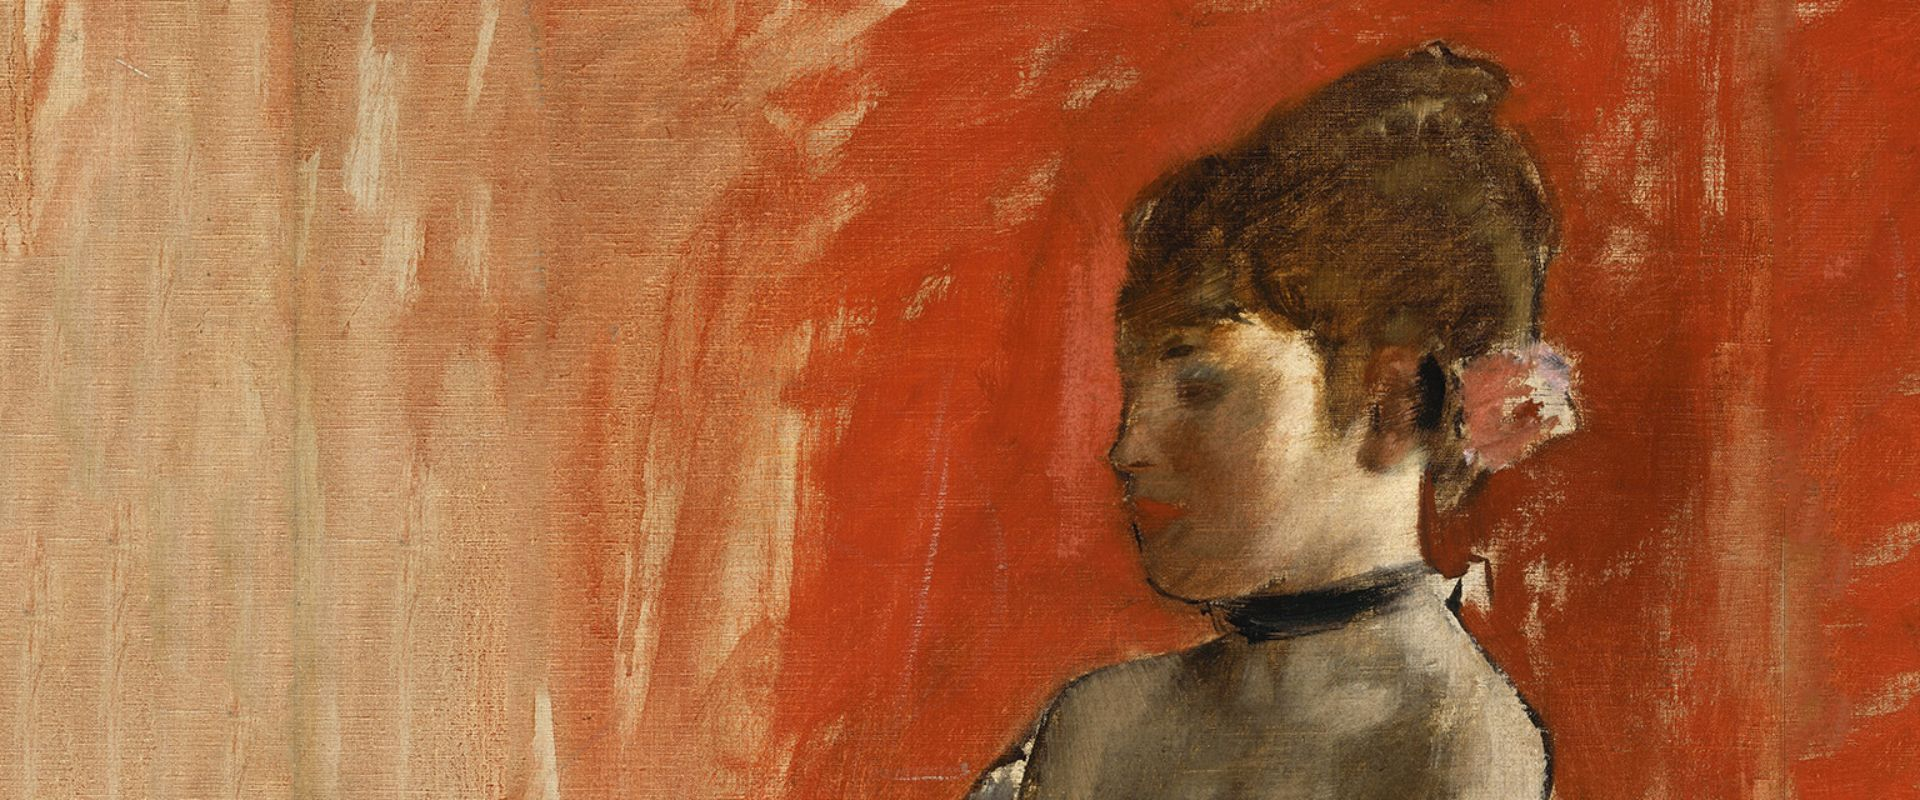 Edgar Degas Artworks Collection | Buy Posters, Frames, Canvas, Digital Art & Large Size Prints Of The Famous Modern Master's Artworks